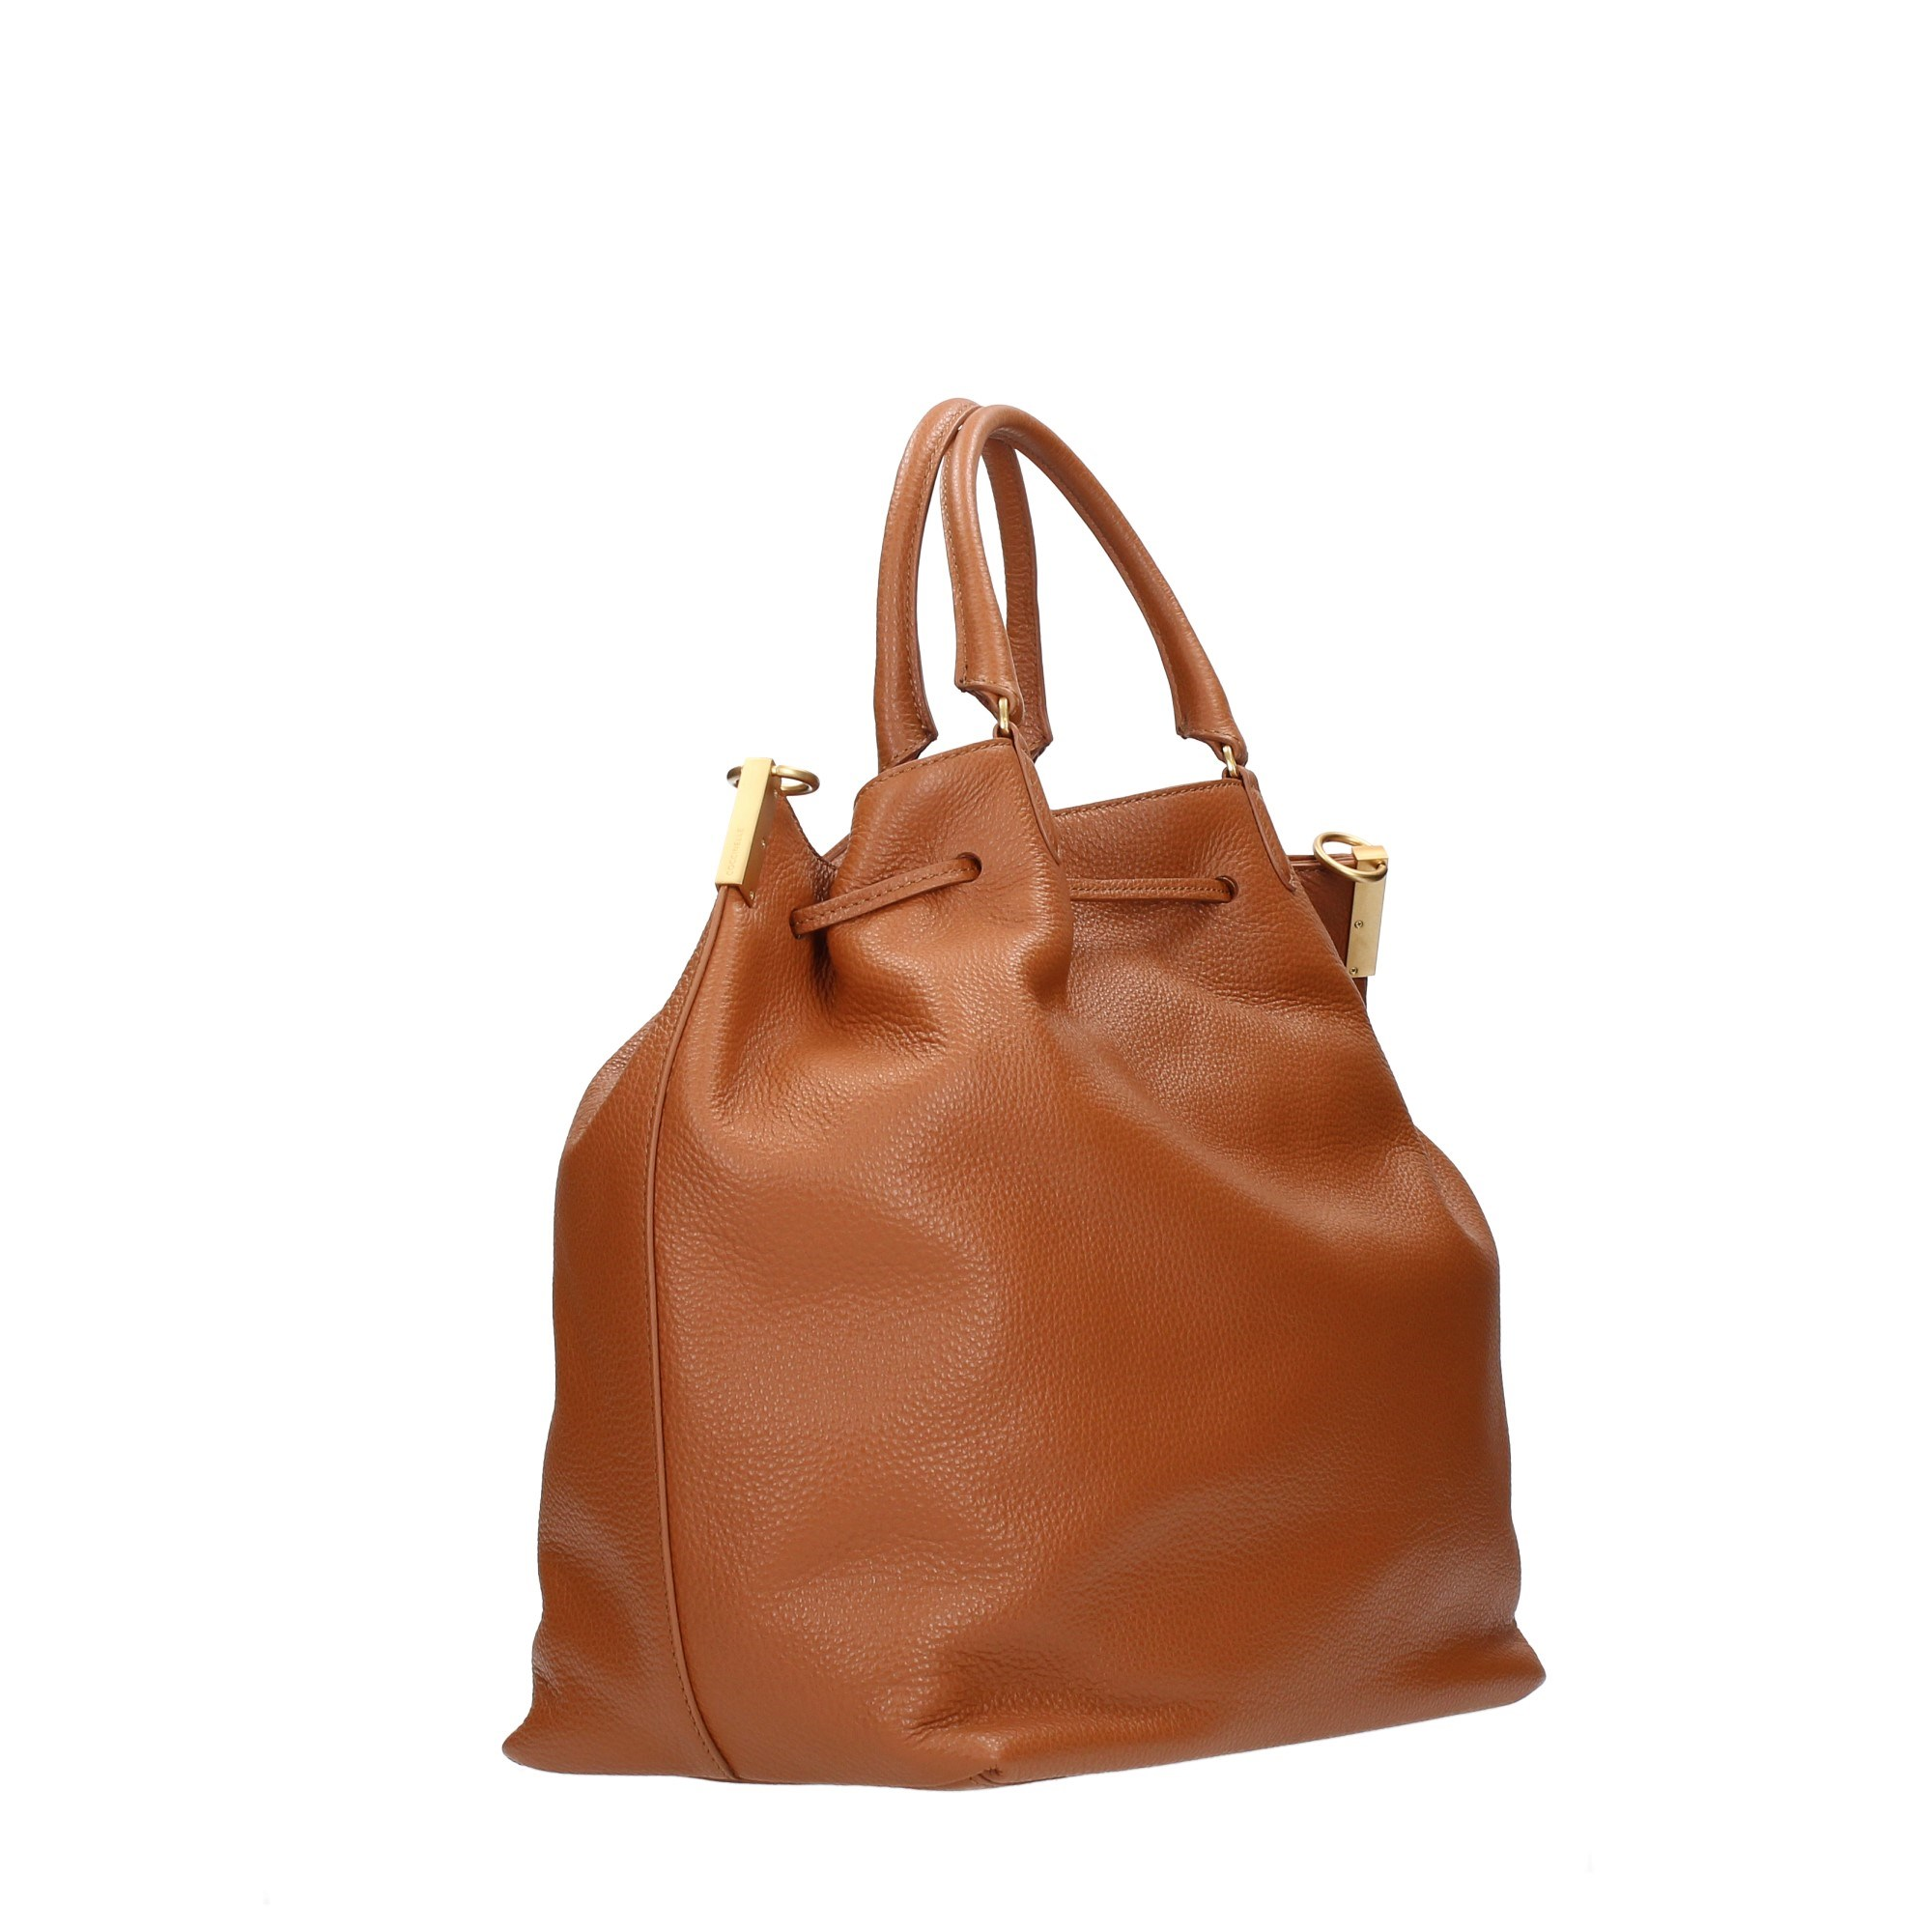 Coccinelle Accessories Women Shoulder Bags Leather GQ0 180101